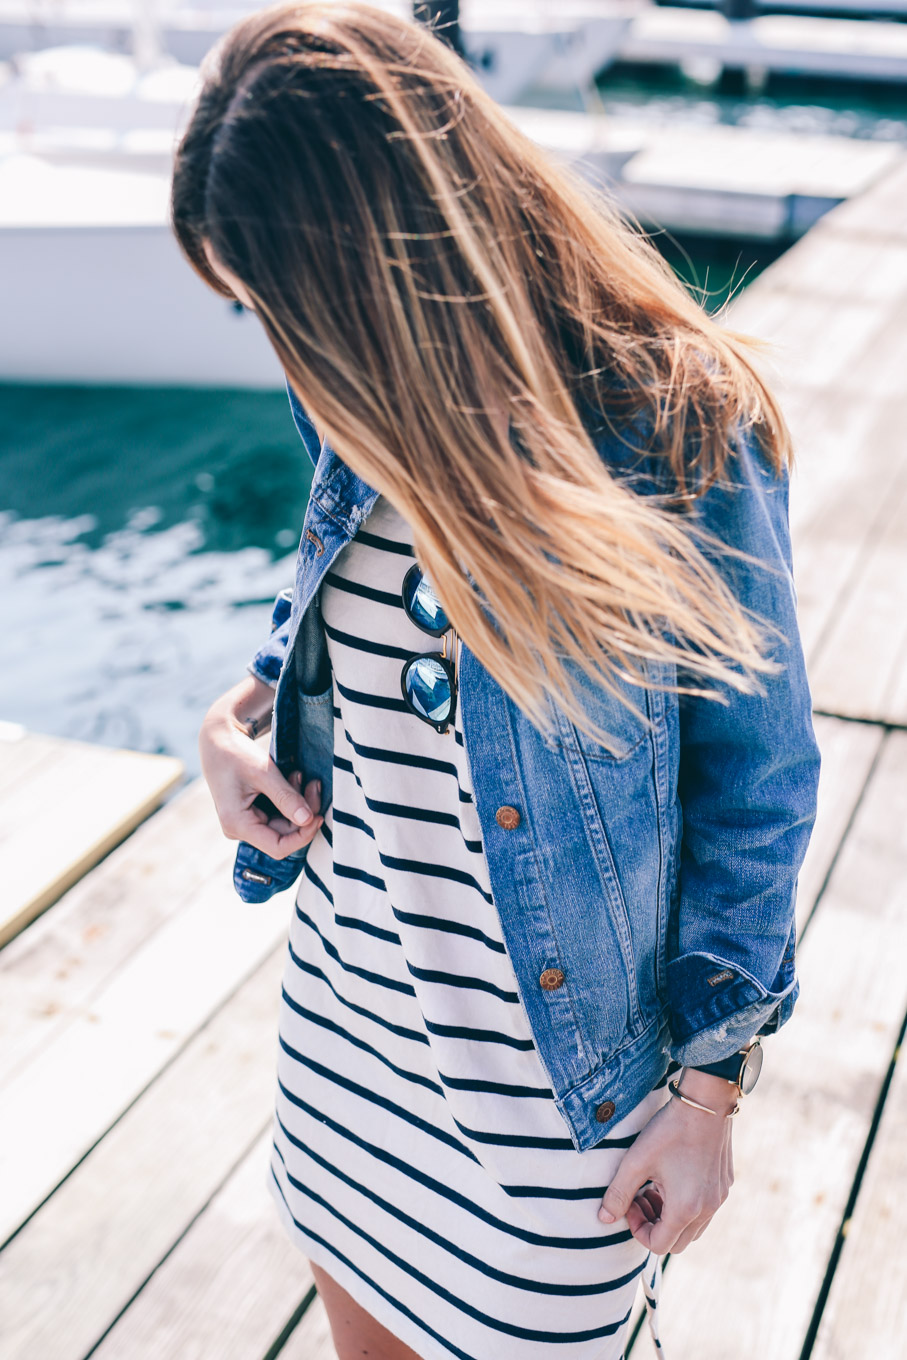 Jess Kirby wearing a striped cotton dress and Madewell jean jacket